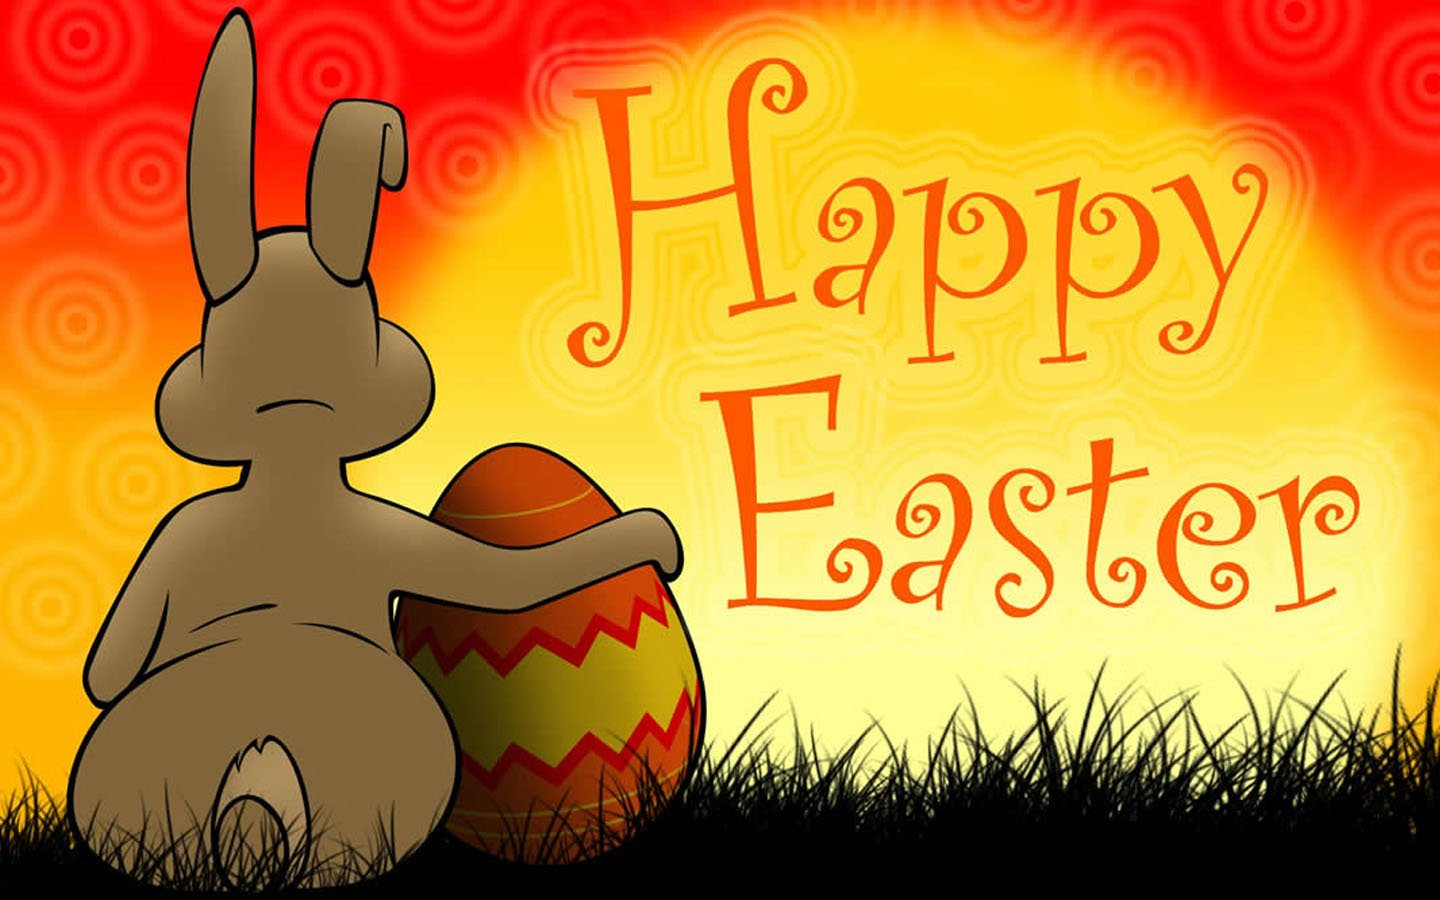 http://2.bp.blogspot.com/-L5GhO4MtGEE/UUDWNPA8ZxI/AAAAAAAAJZU/SrISlrqslkM/s1600/Beautiful+Easter+Wallpapers+(5).jpg